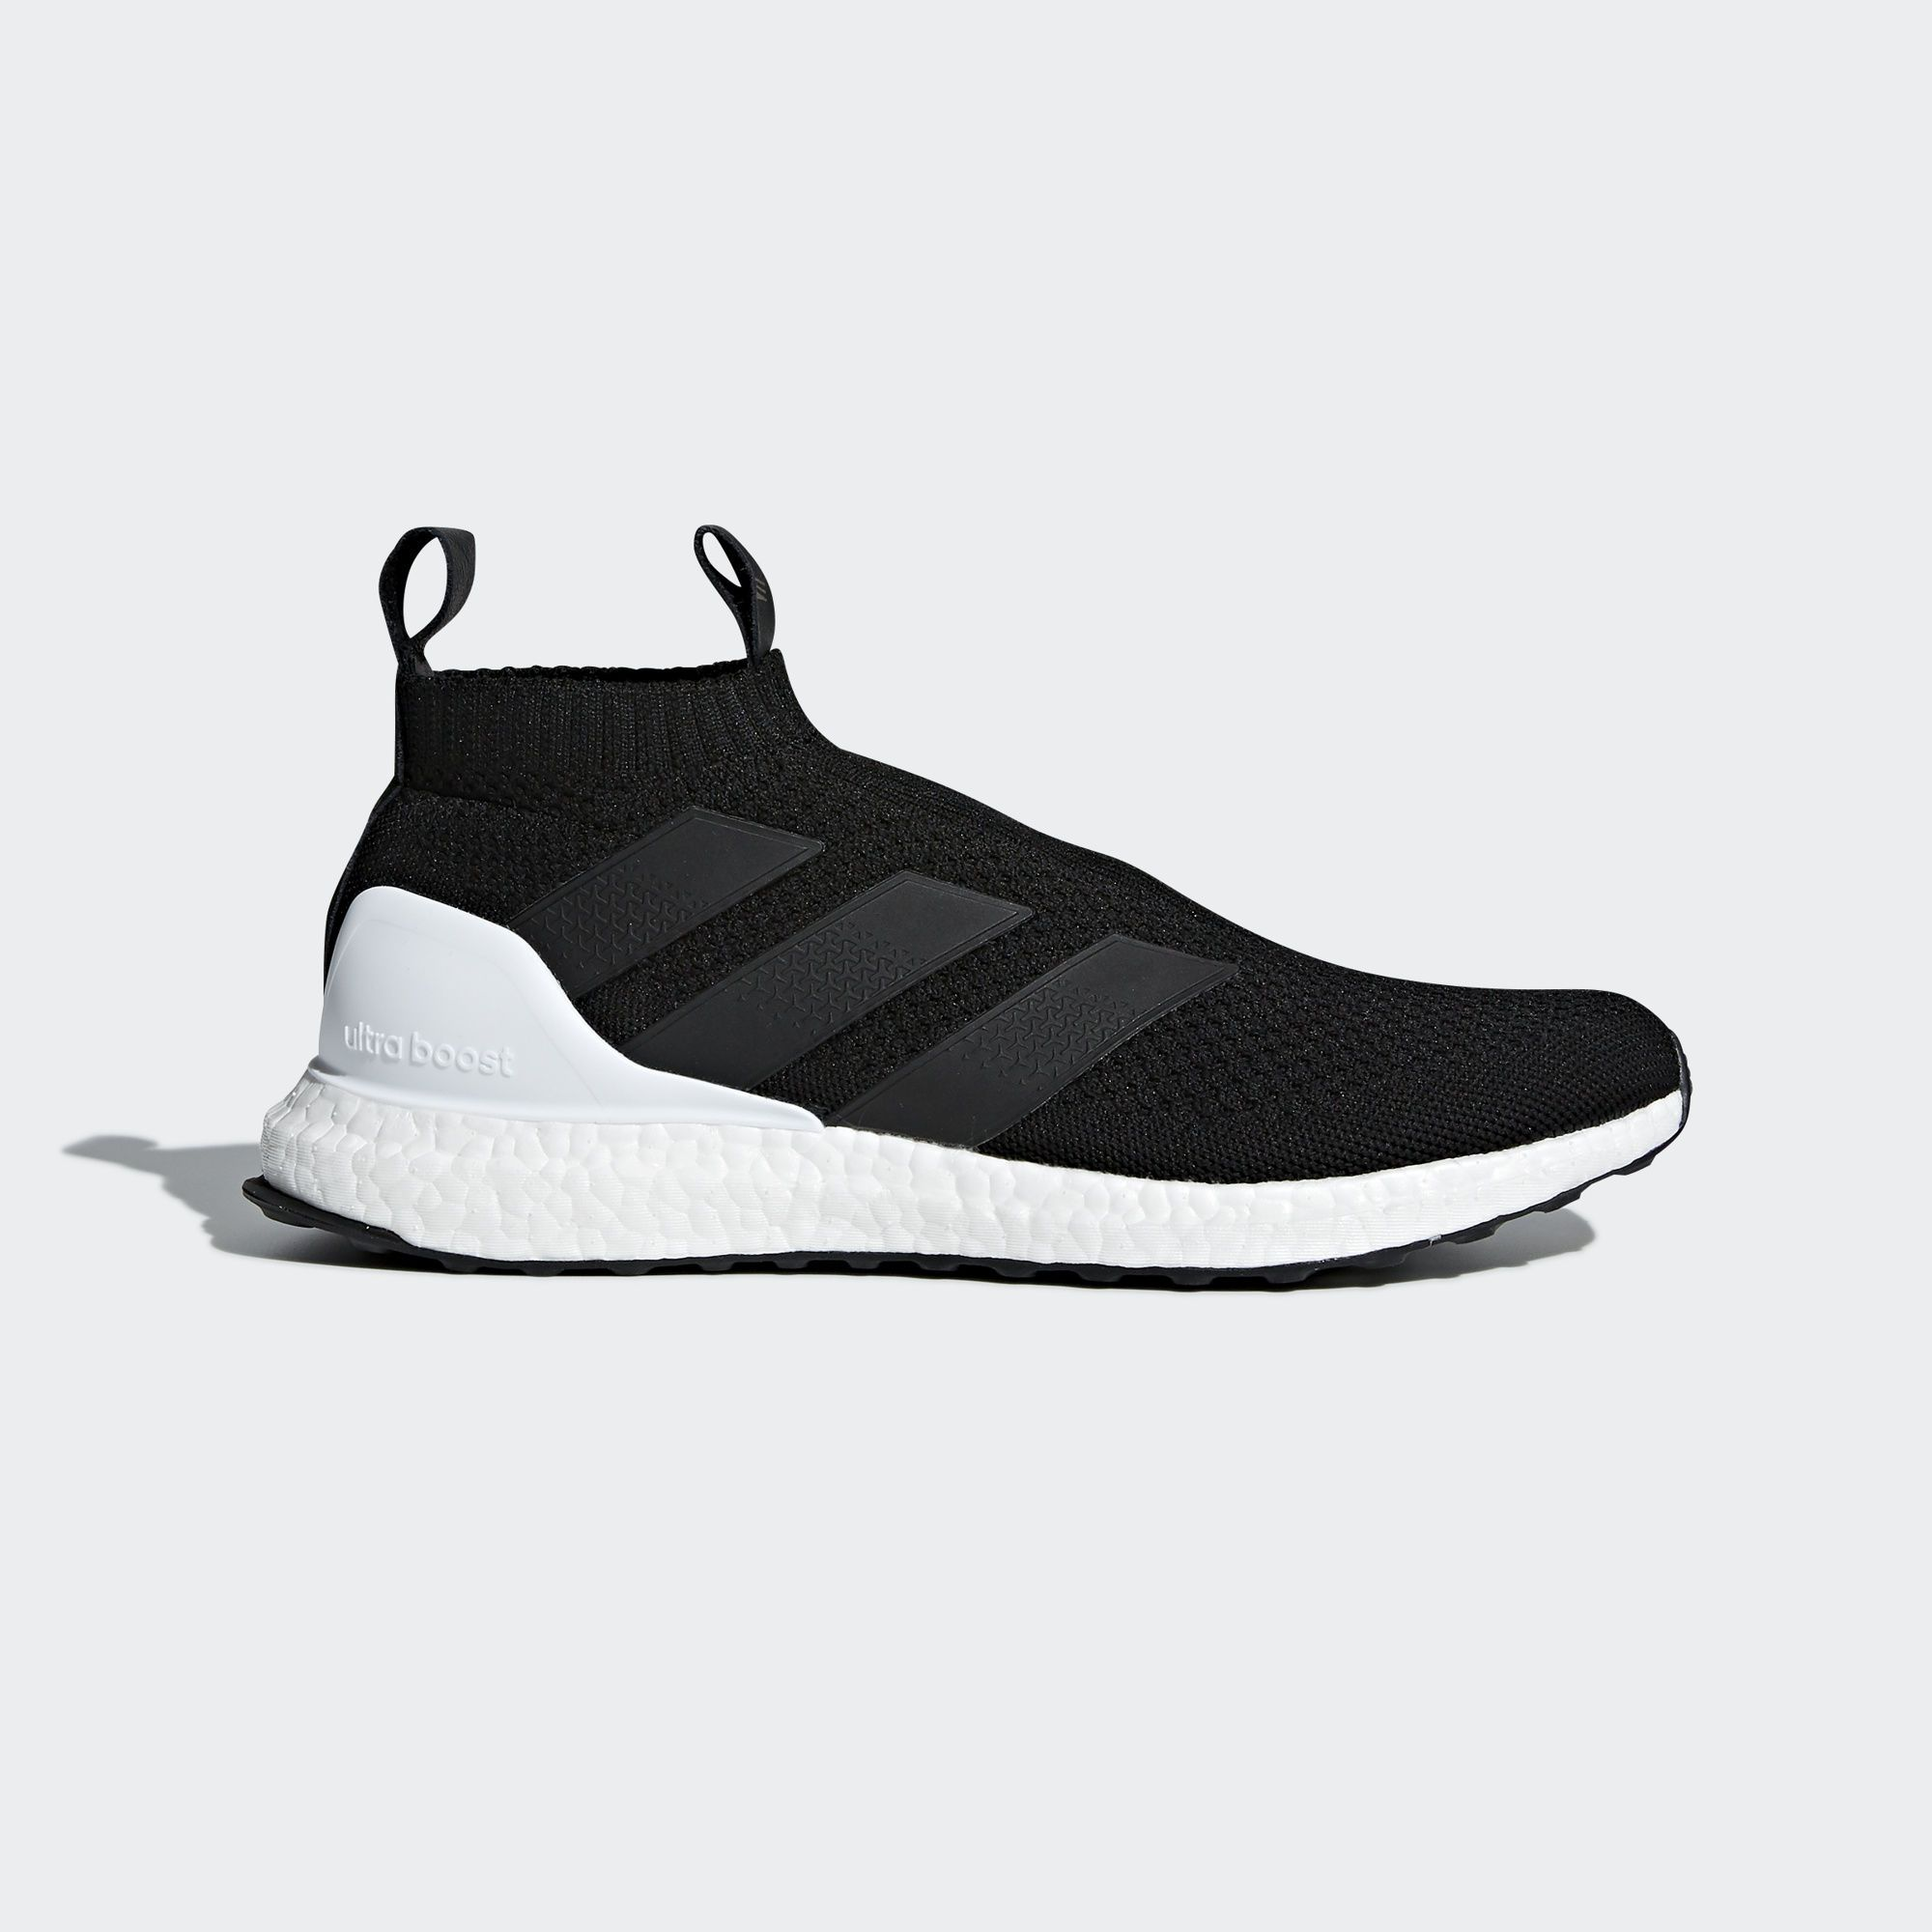 Adidas A 16 Purecontrol Ultraboost Shoes Black Adidas Us Sneakers Men Fashion Adidas Running Shoes Adidas Ultra Boost